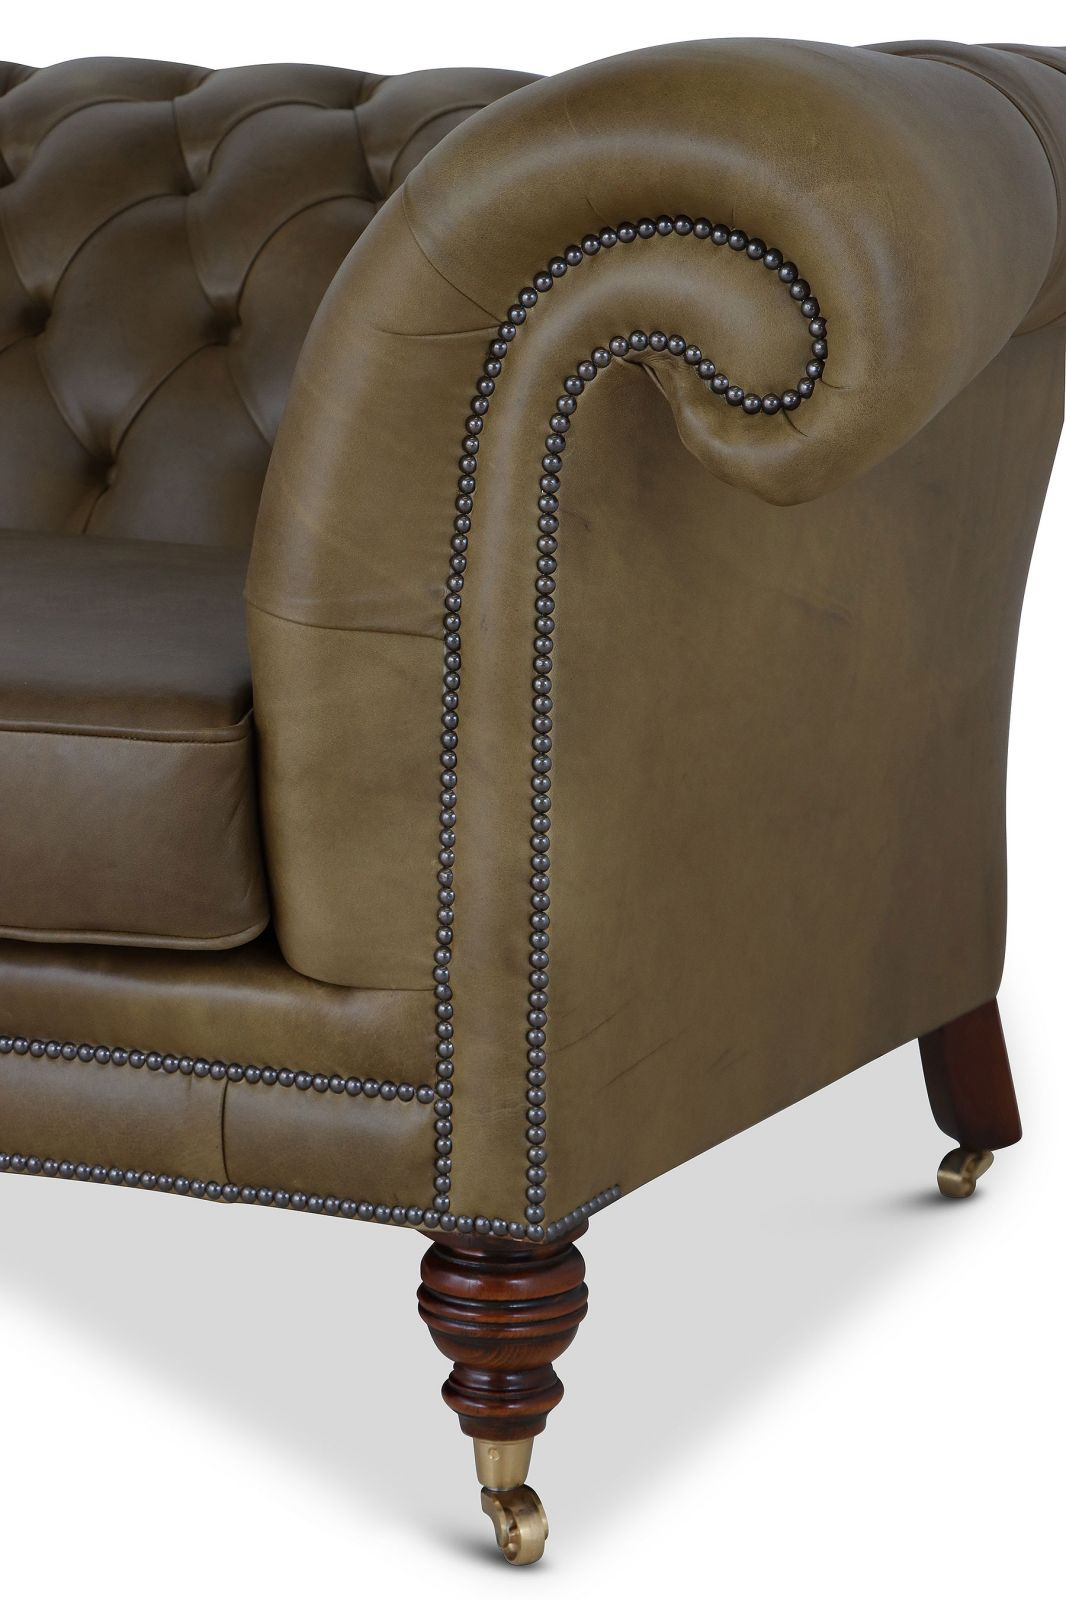 Cliveden 3 seat Chesterfield in olive green leather